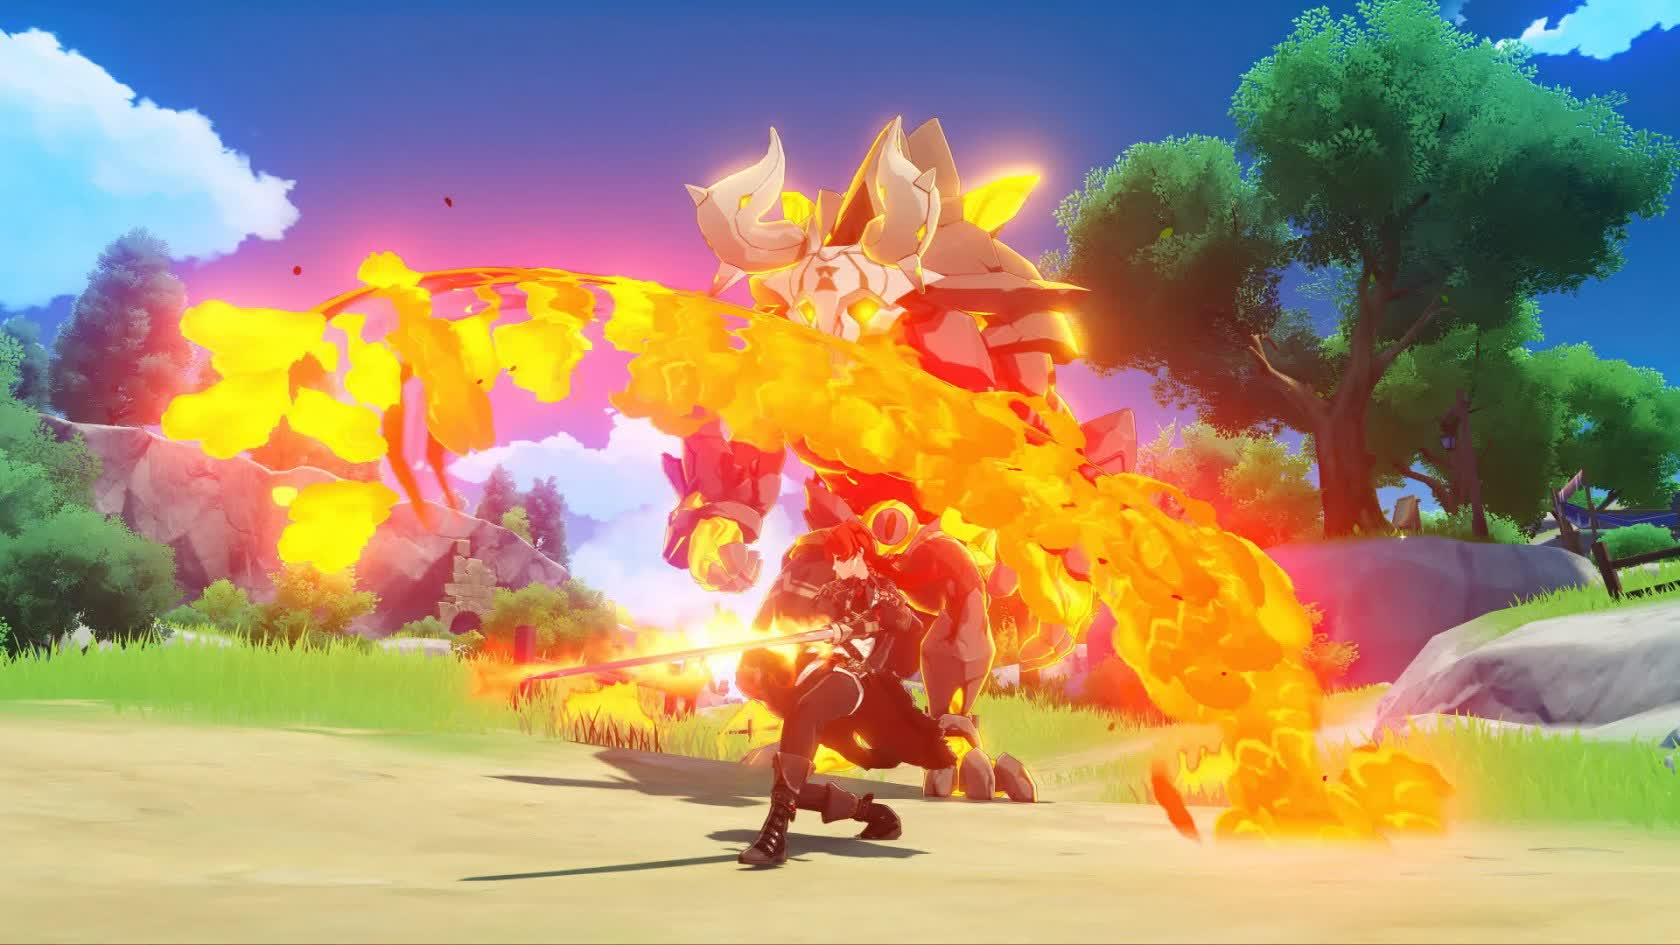 Breath of the Wild-like freemium hit 'Genshin Impact' grossed $245 million on mobile in its first month